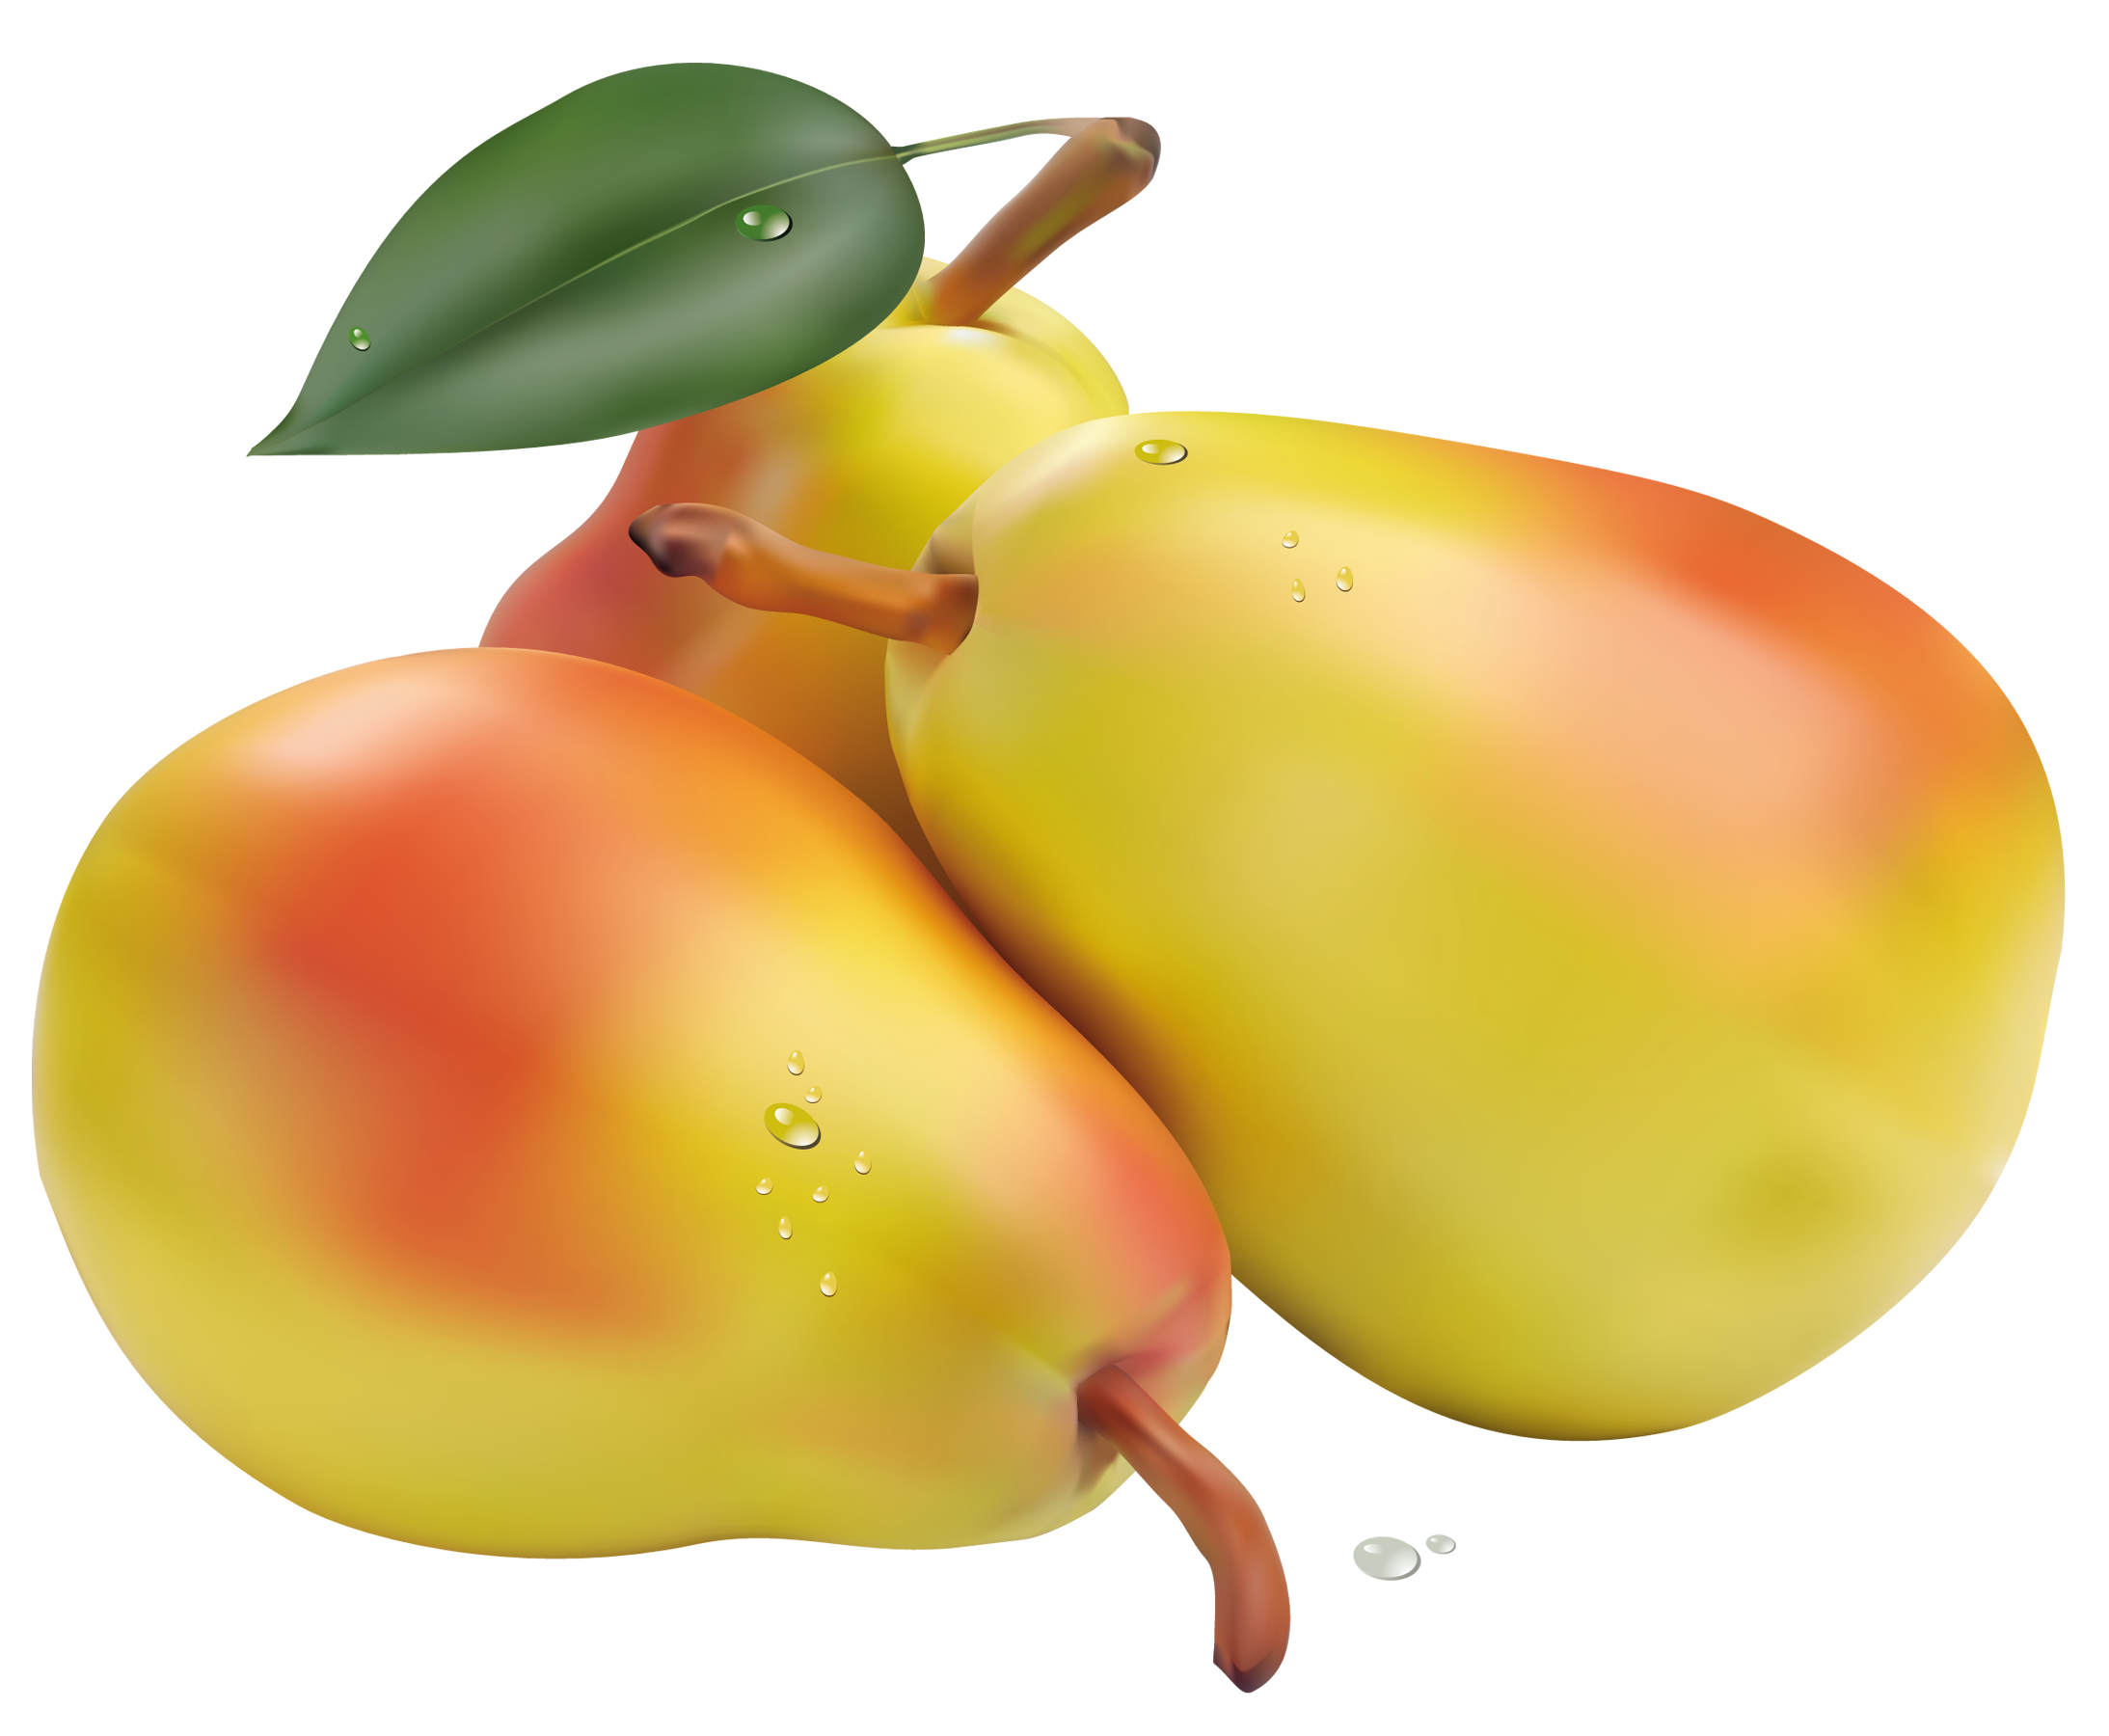 Clipart vegetables printable. Pears png picture fruit